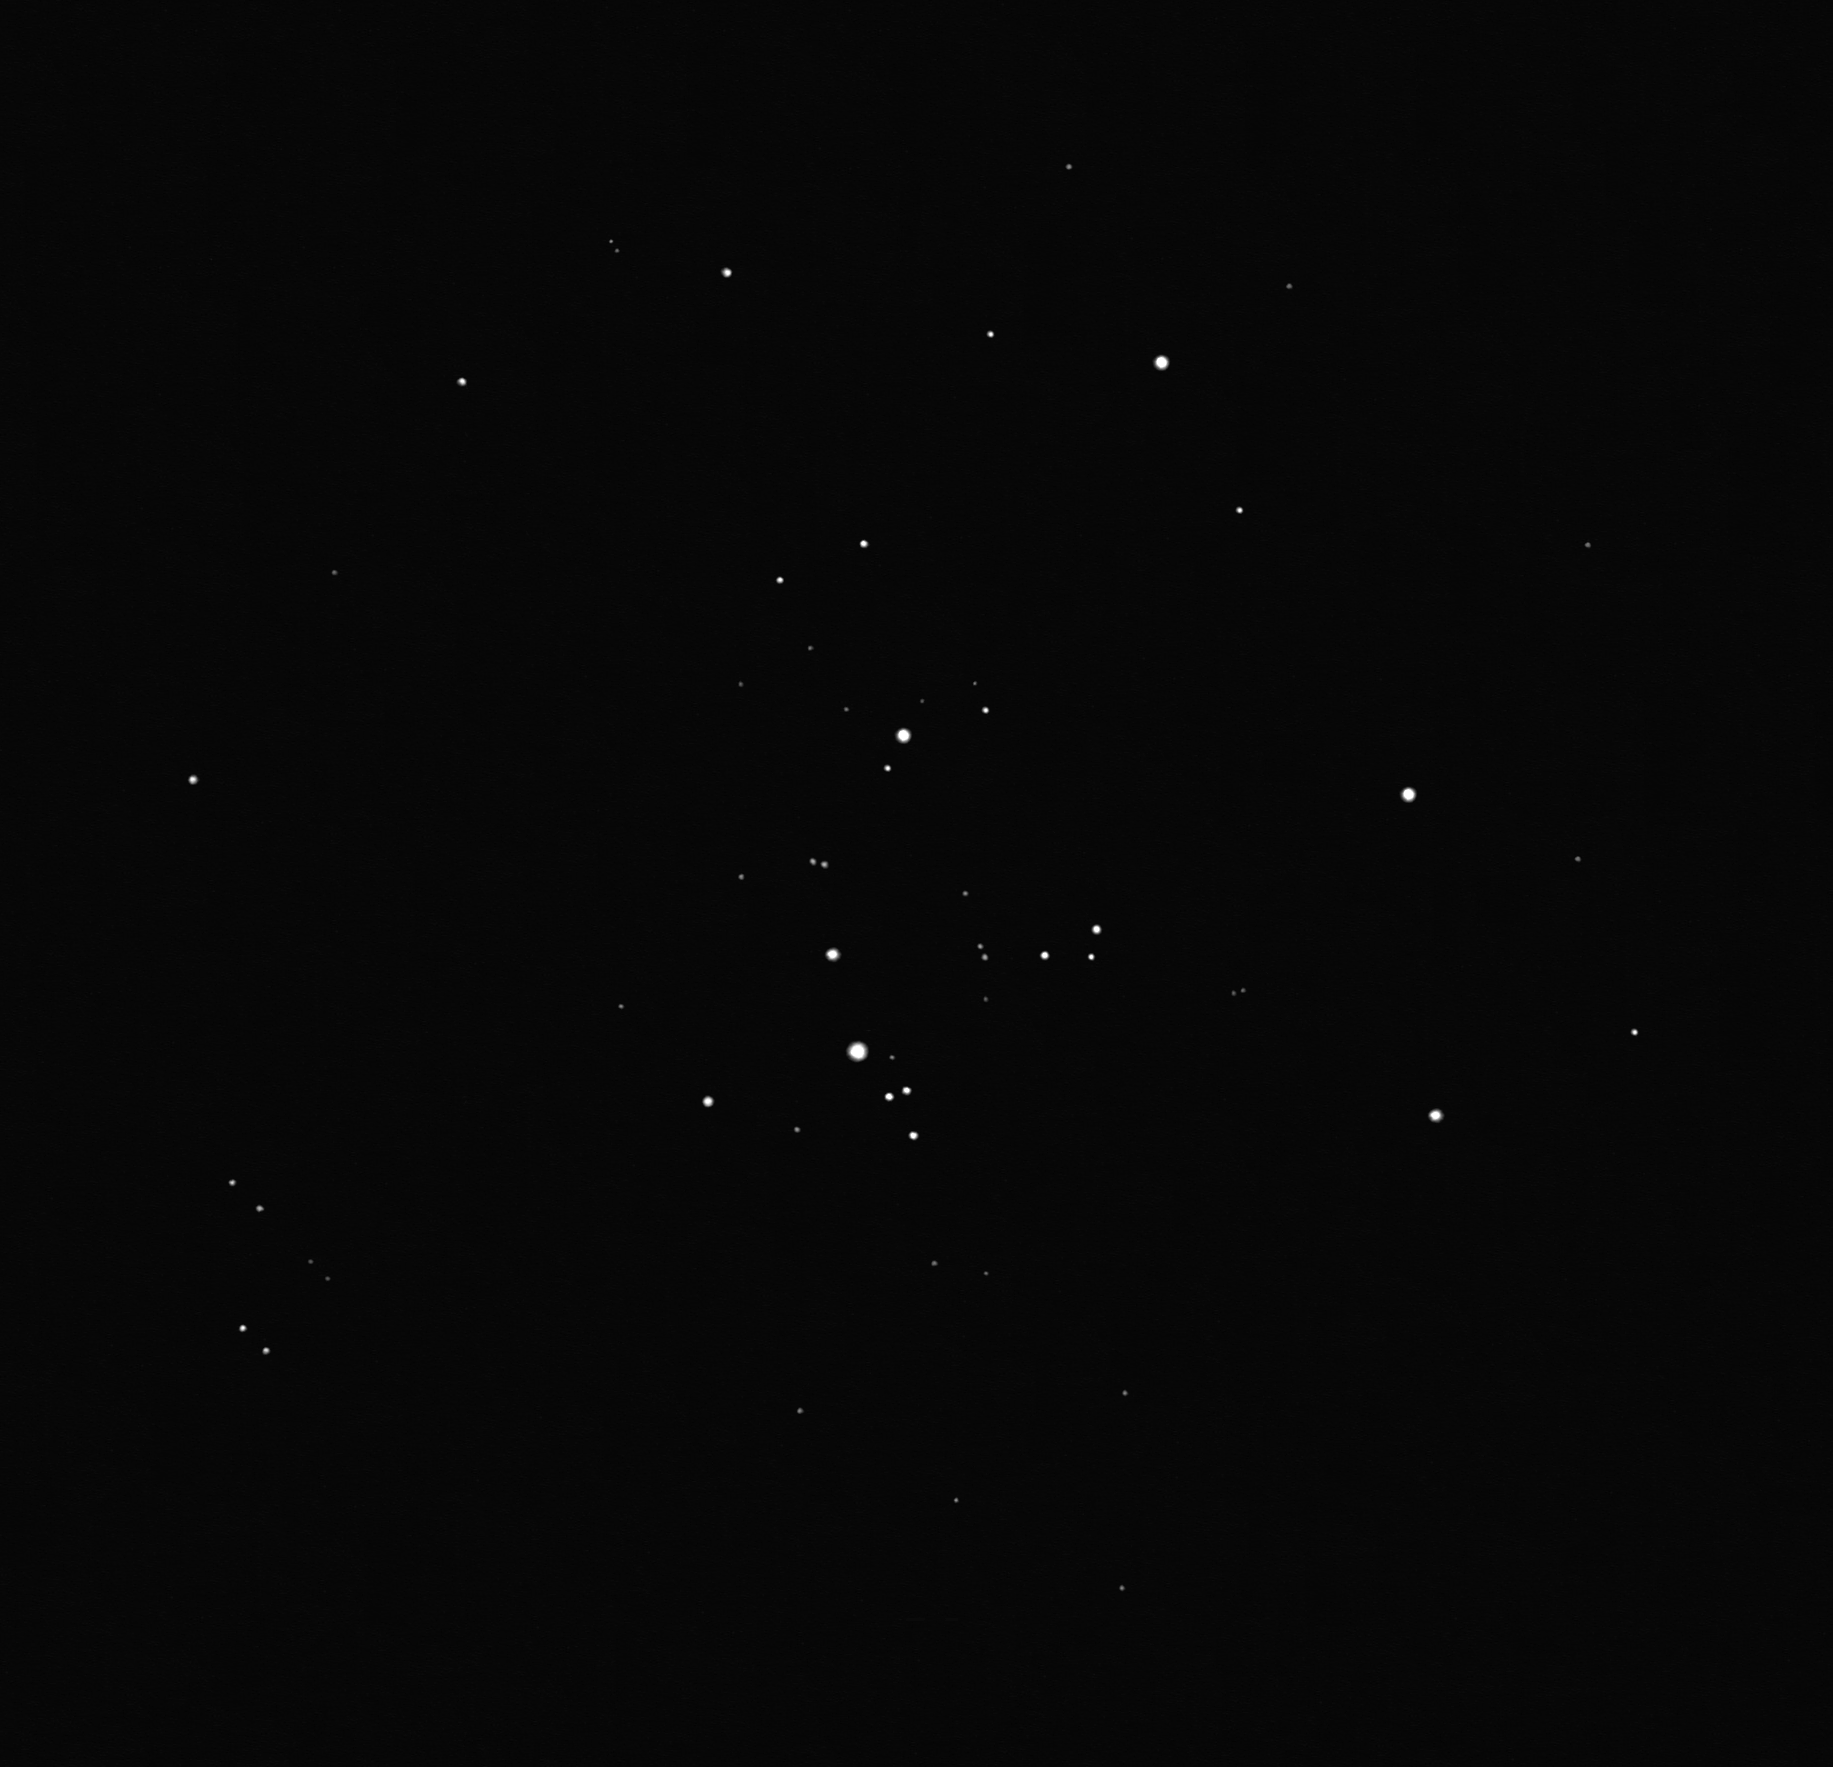 ngc 2547 open cluster